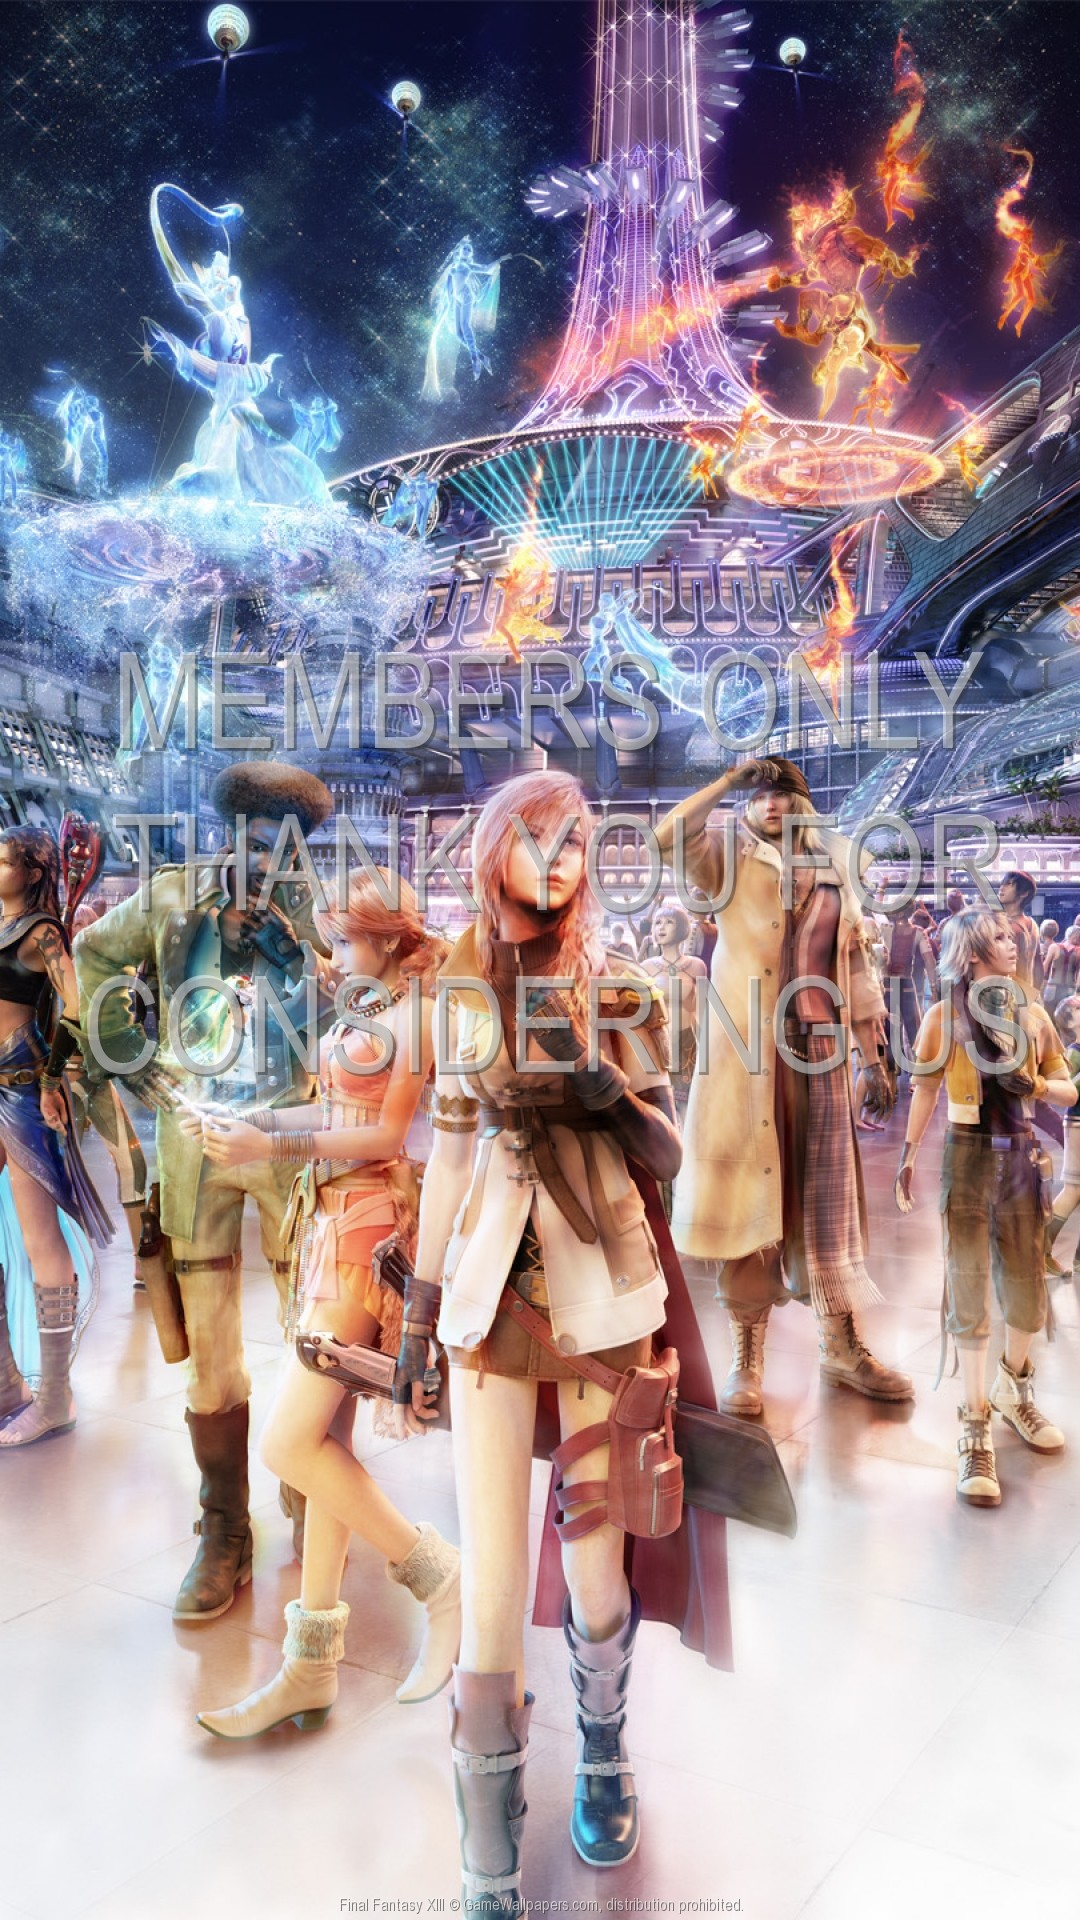 1080x1920 Final Fantasy XIII 1920x1080 Mobile wallpaper or background 11